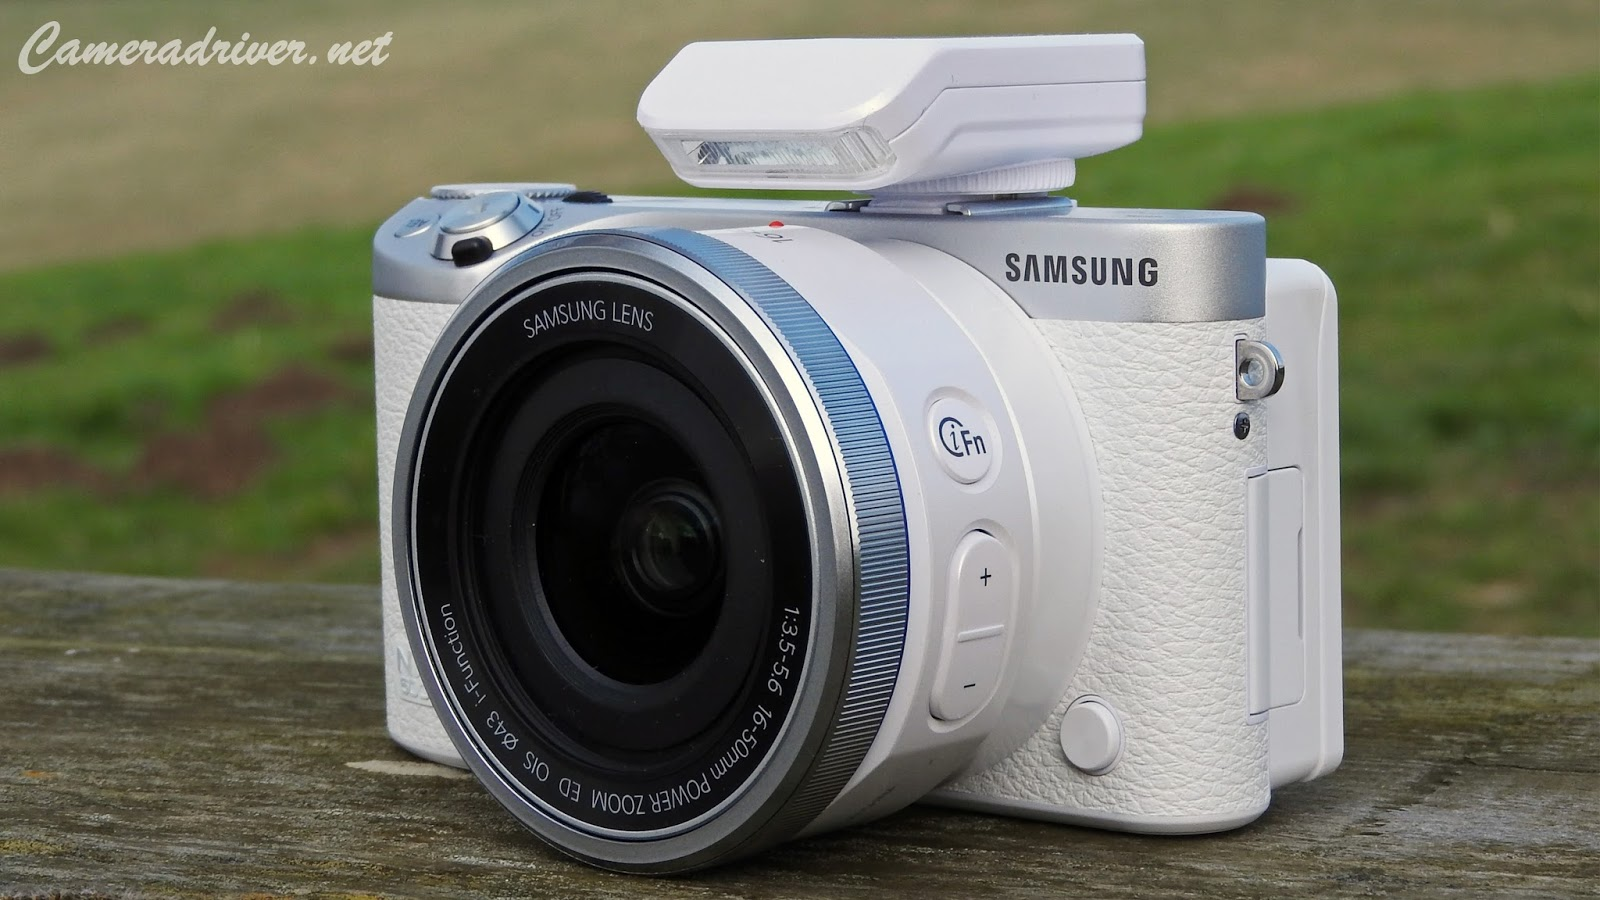 Samsung NX500 Firmware version 1.12 Update